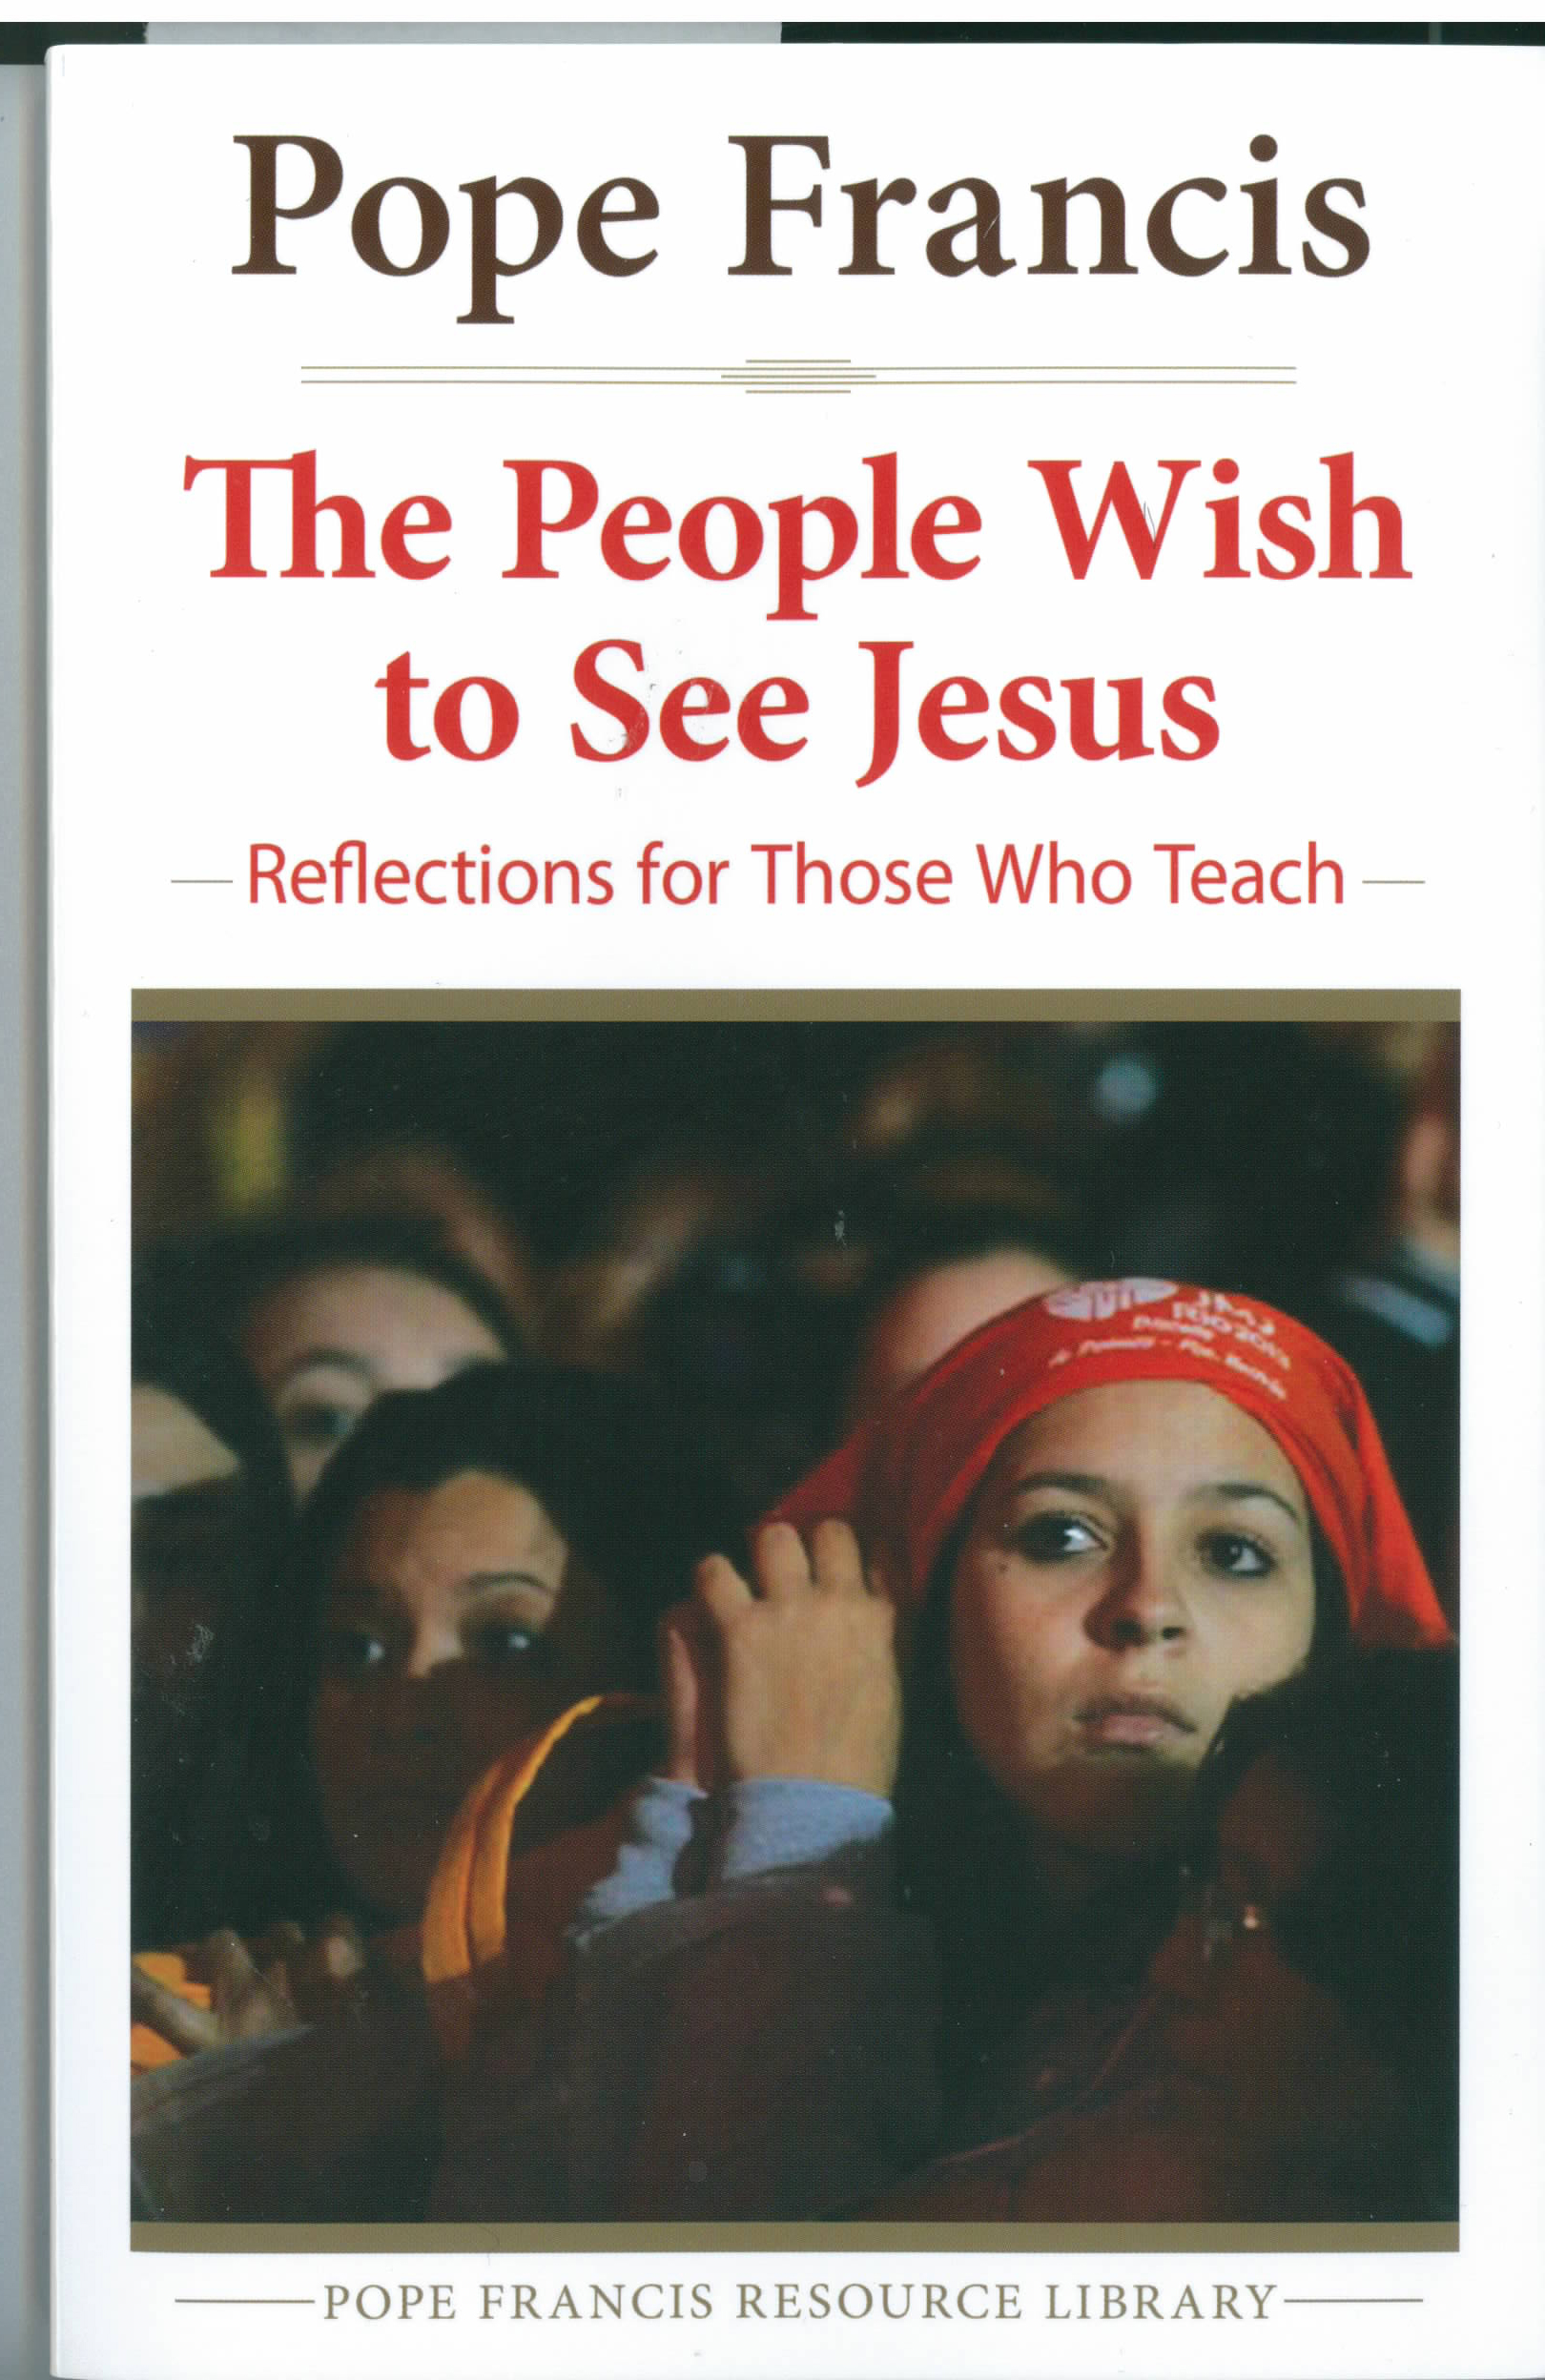 The People Wish To See Jesus by Pope Francis 108-9780824520366